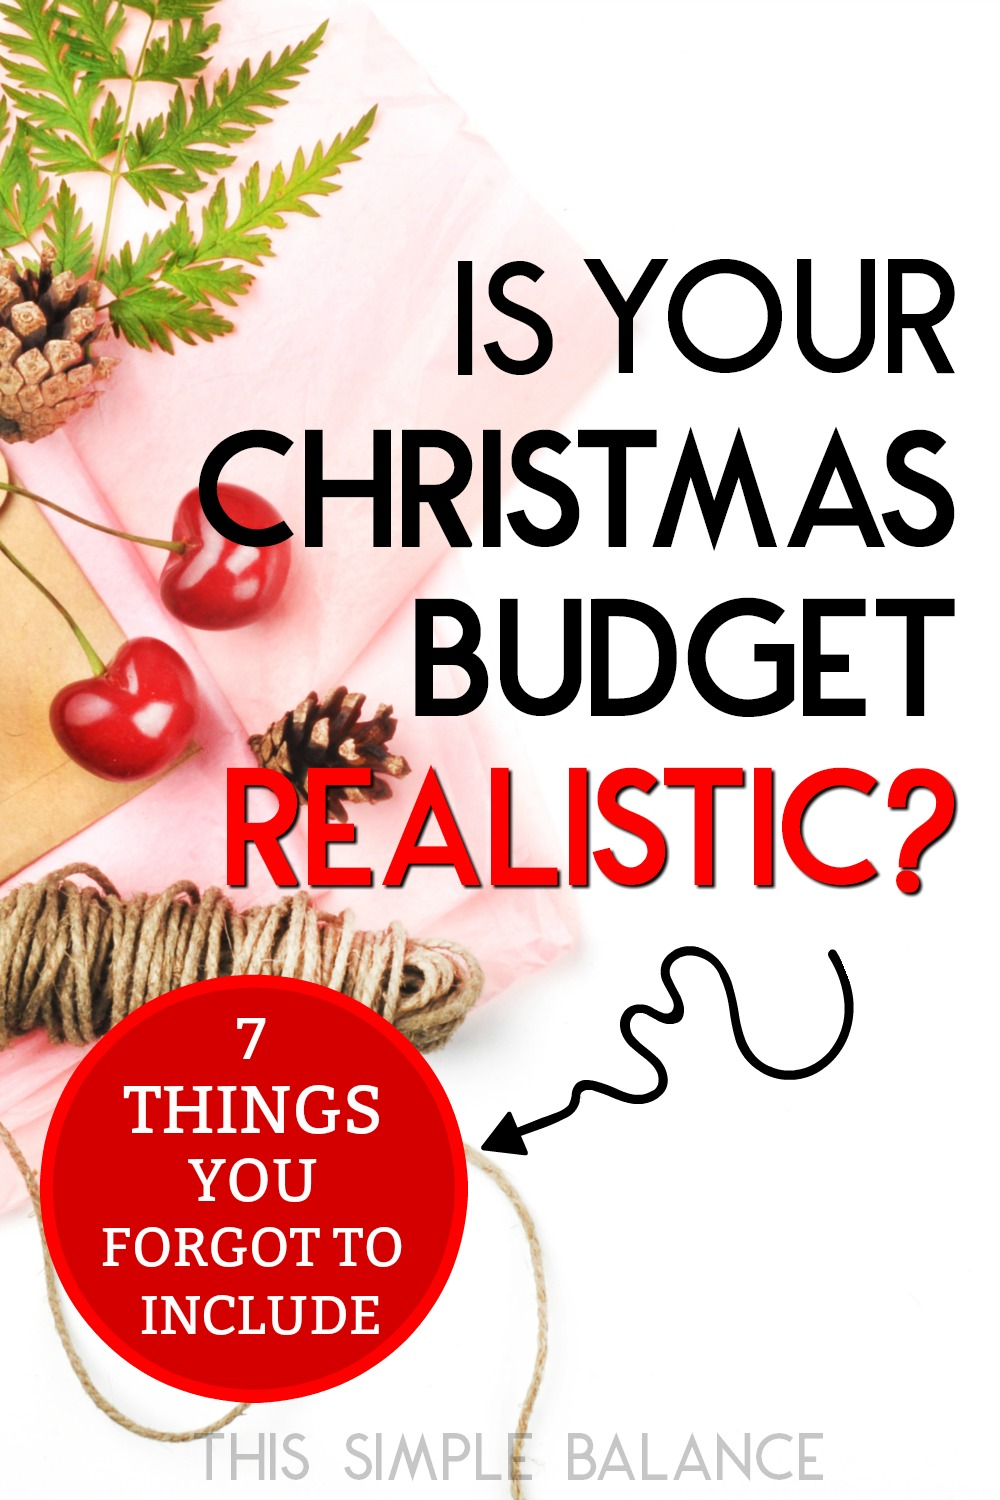 Your Christmas budget is probably unrealistic: most people just include Christmas gifts in their Christmas budget, when there is so much more to include! Don't forget to include the costs of these 7 common Christmas expenses.